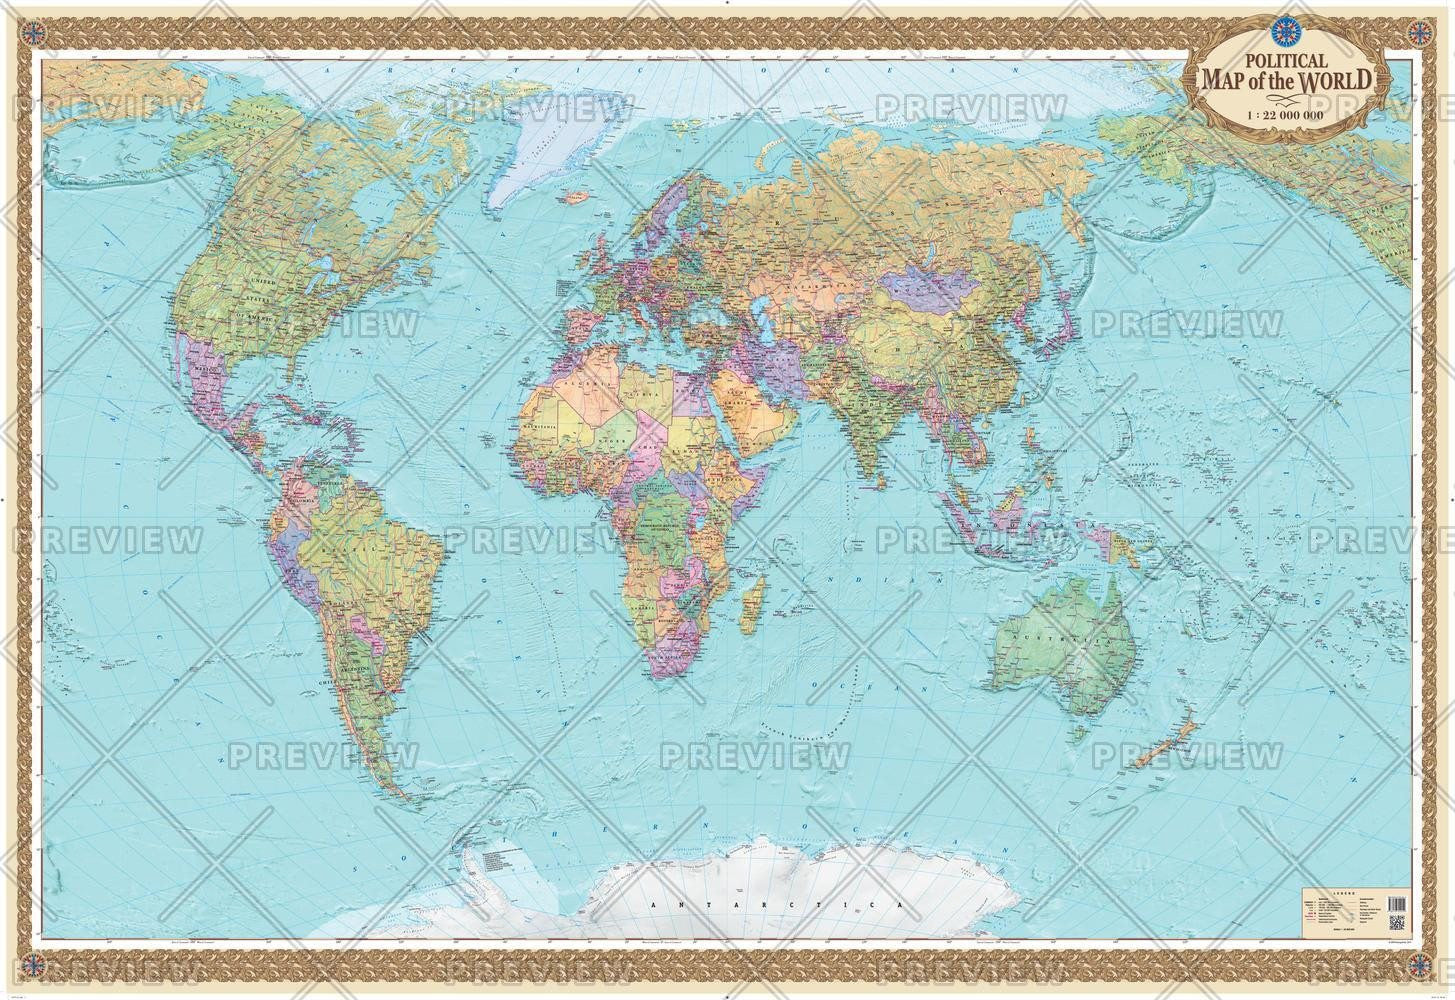 Map Of The World In English.Political Map Of The World English